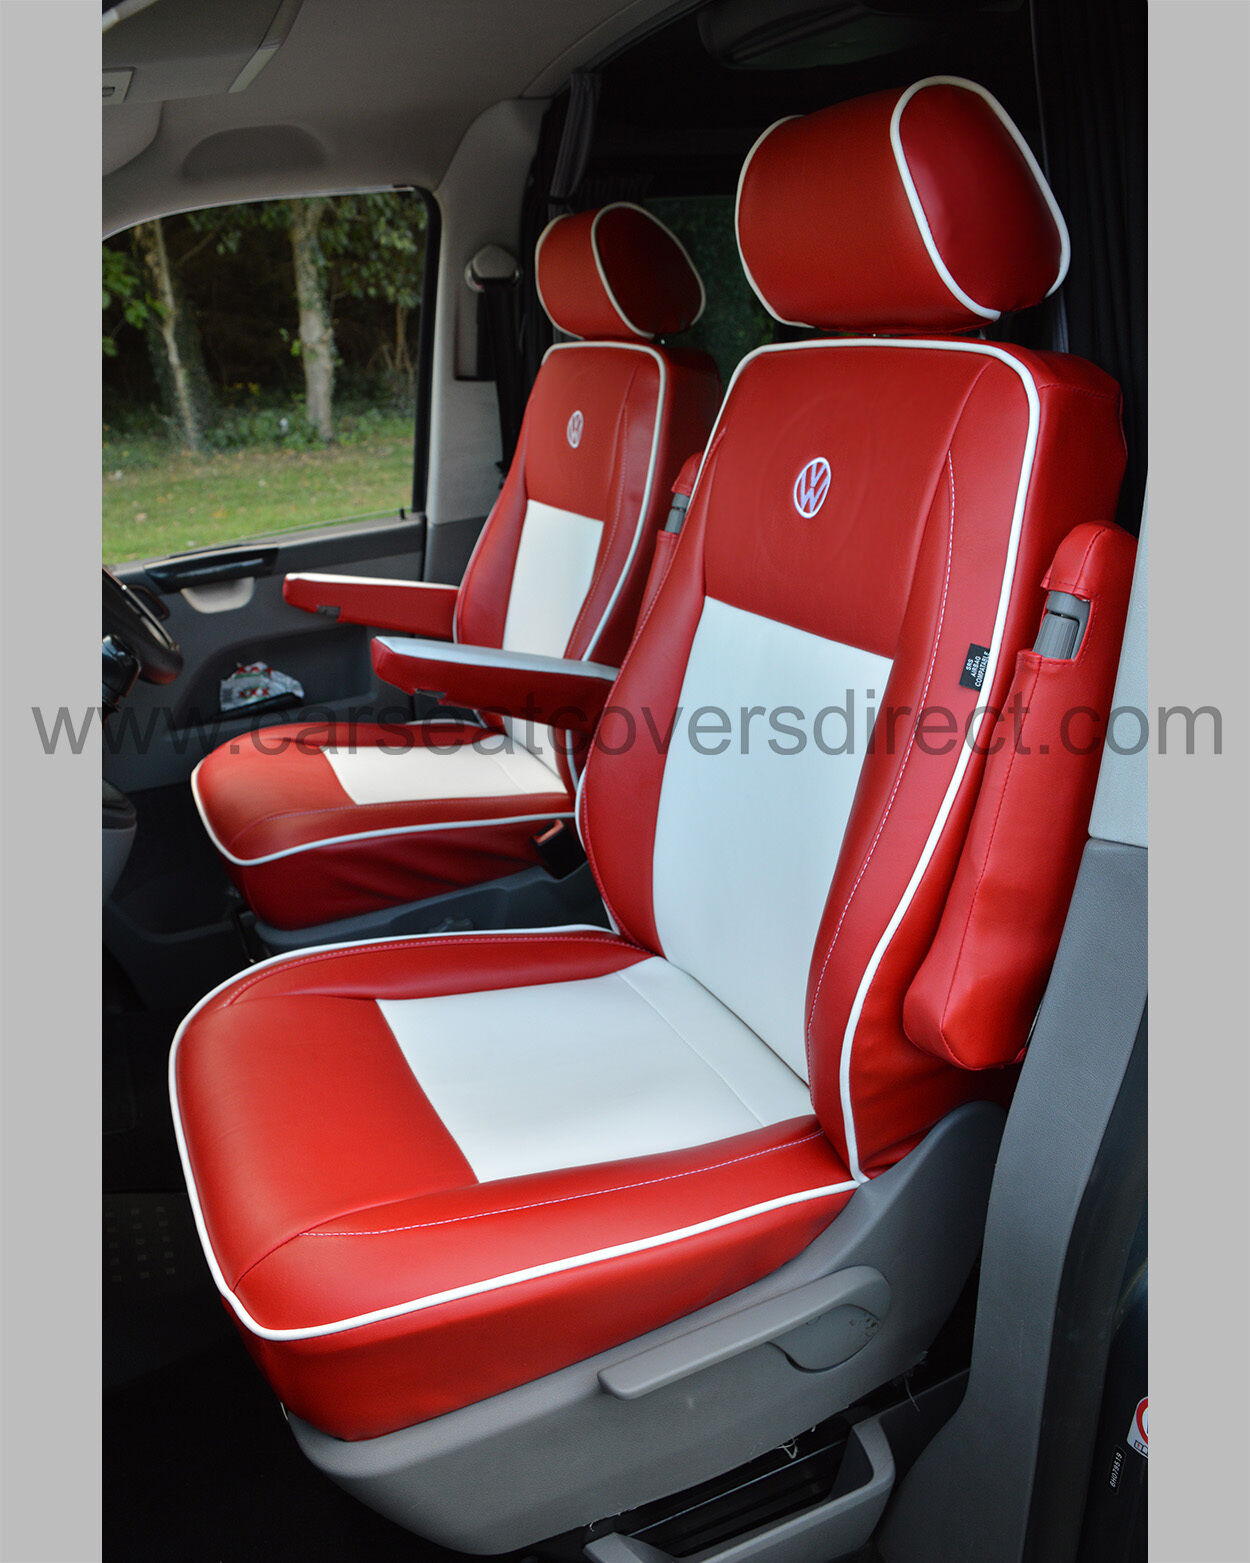 VW Transporter T5 Waterproof Tailored Van Captain Seat Covers Red